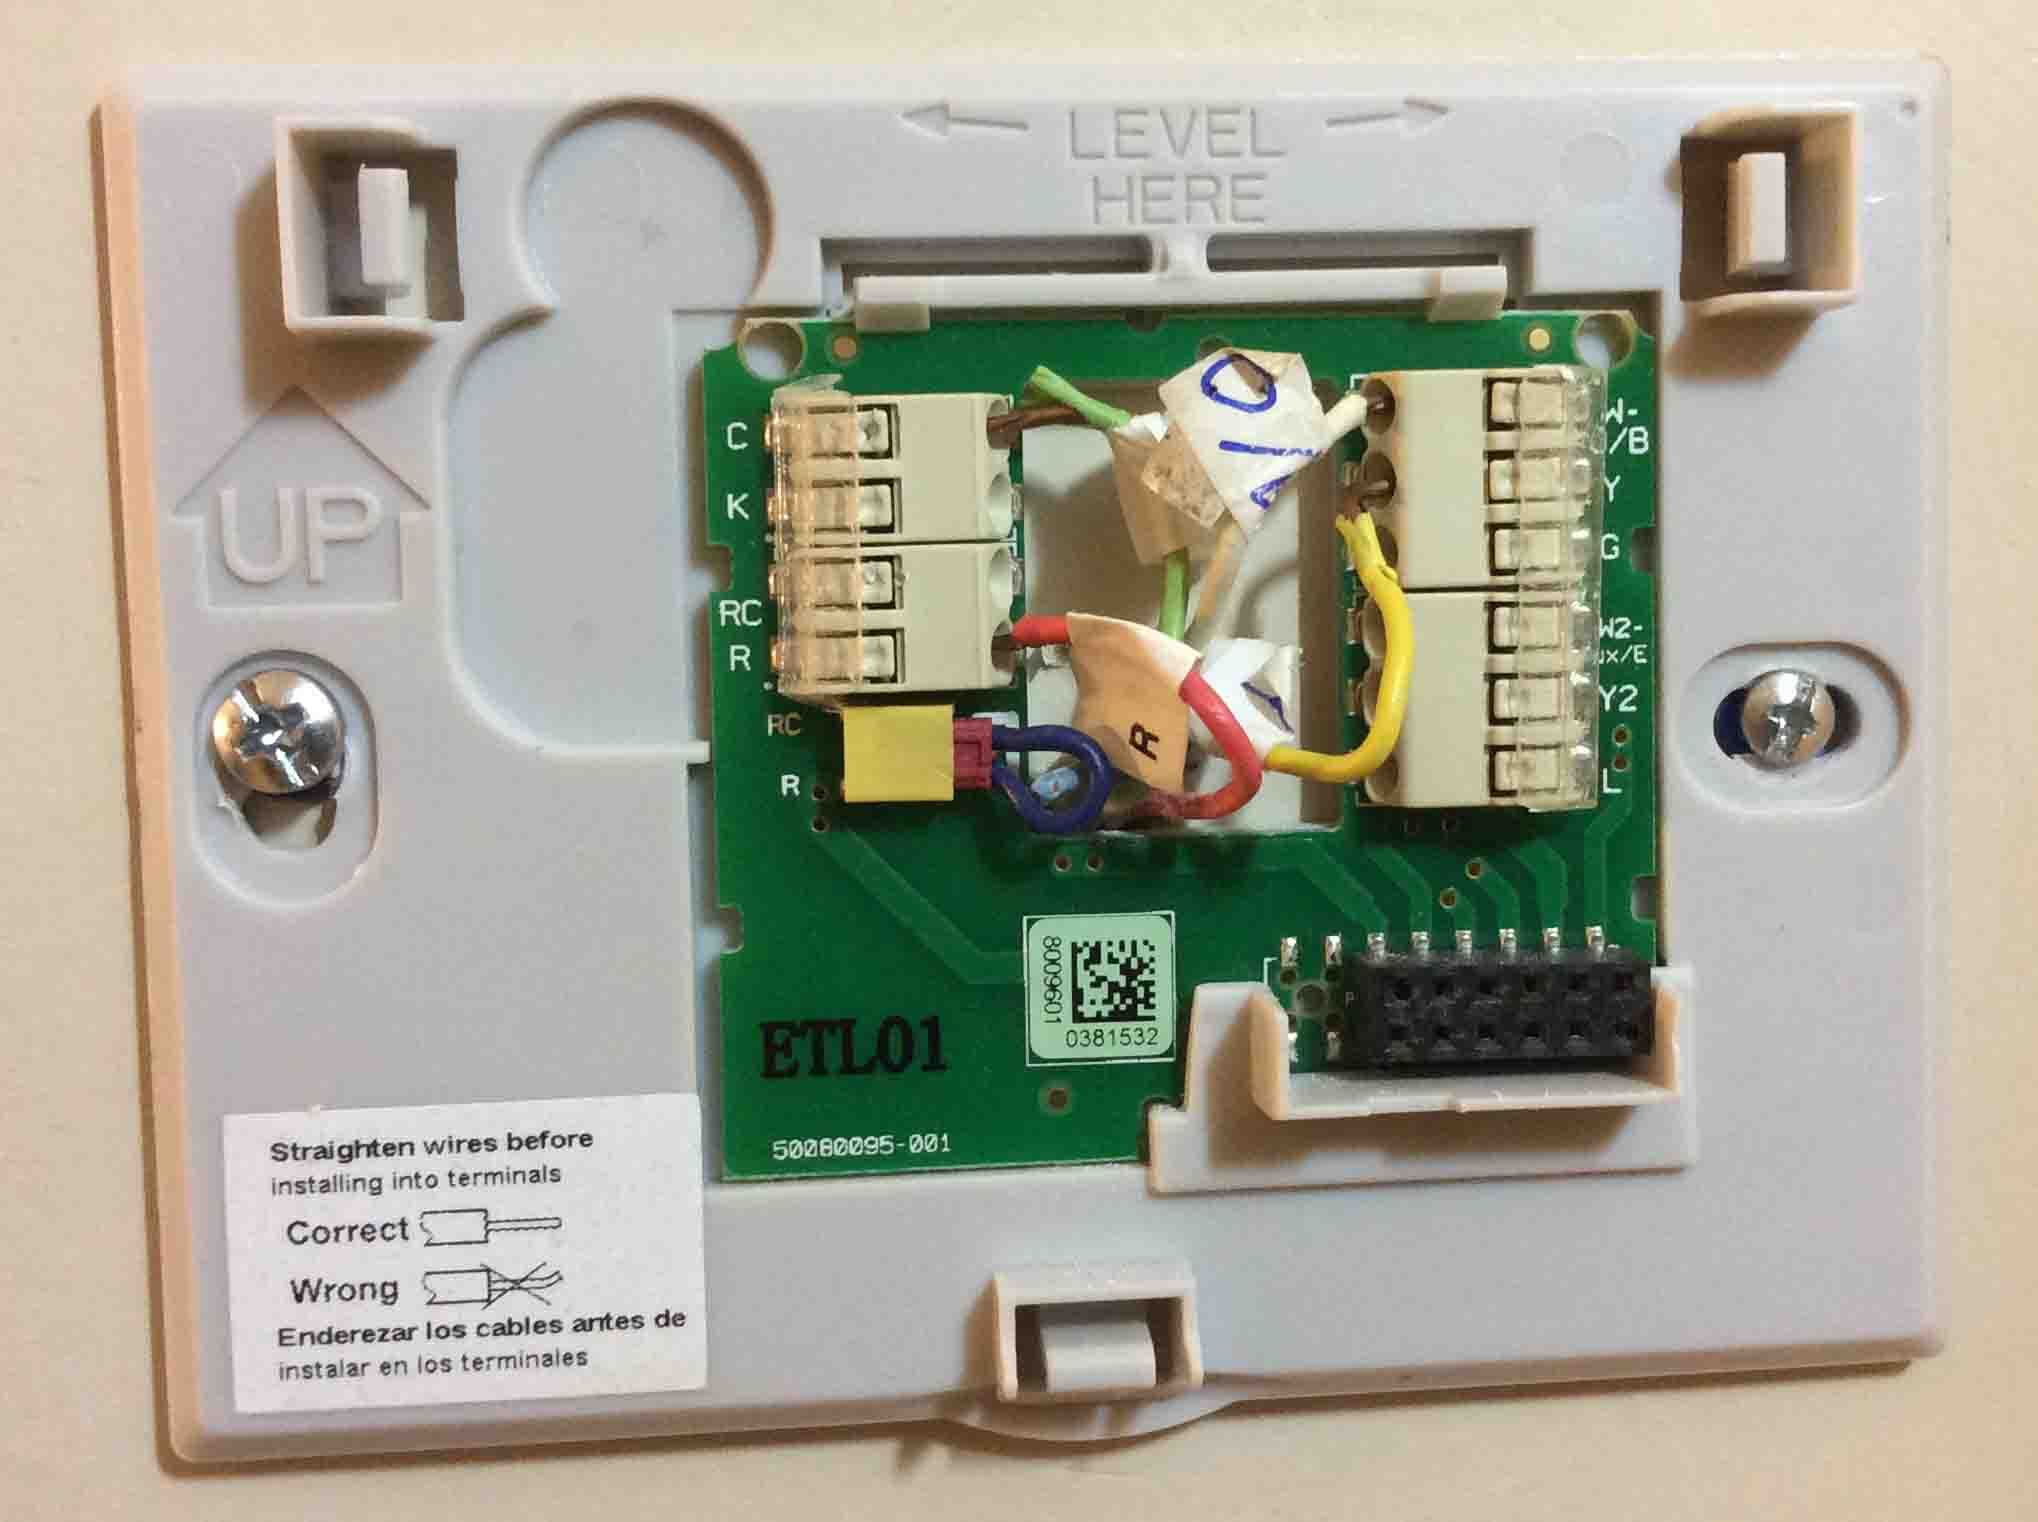 Grc rwy thermostat wiring diagram wiring diagram honeywell wifi thermostat wiring diagram wiring library u2022 ahotel co thermostat wiring color code grc rwy thermostat wiring diagram cheapraybanclubmaster Gallery